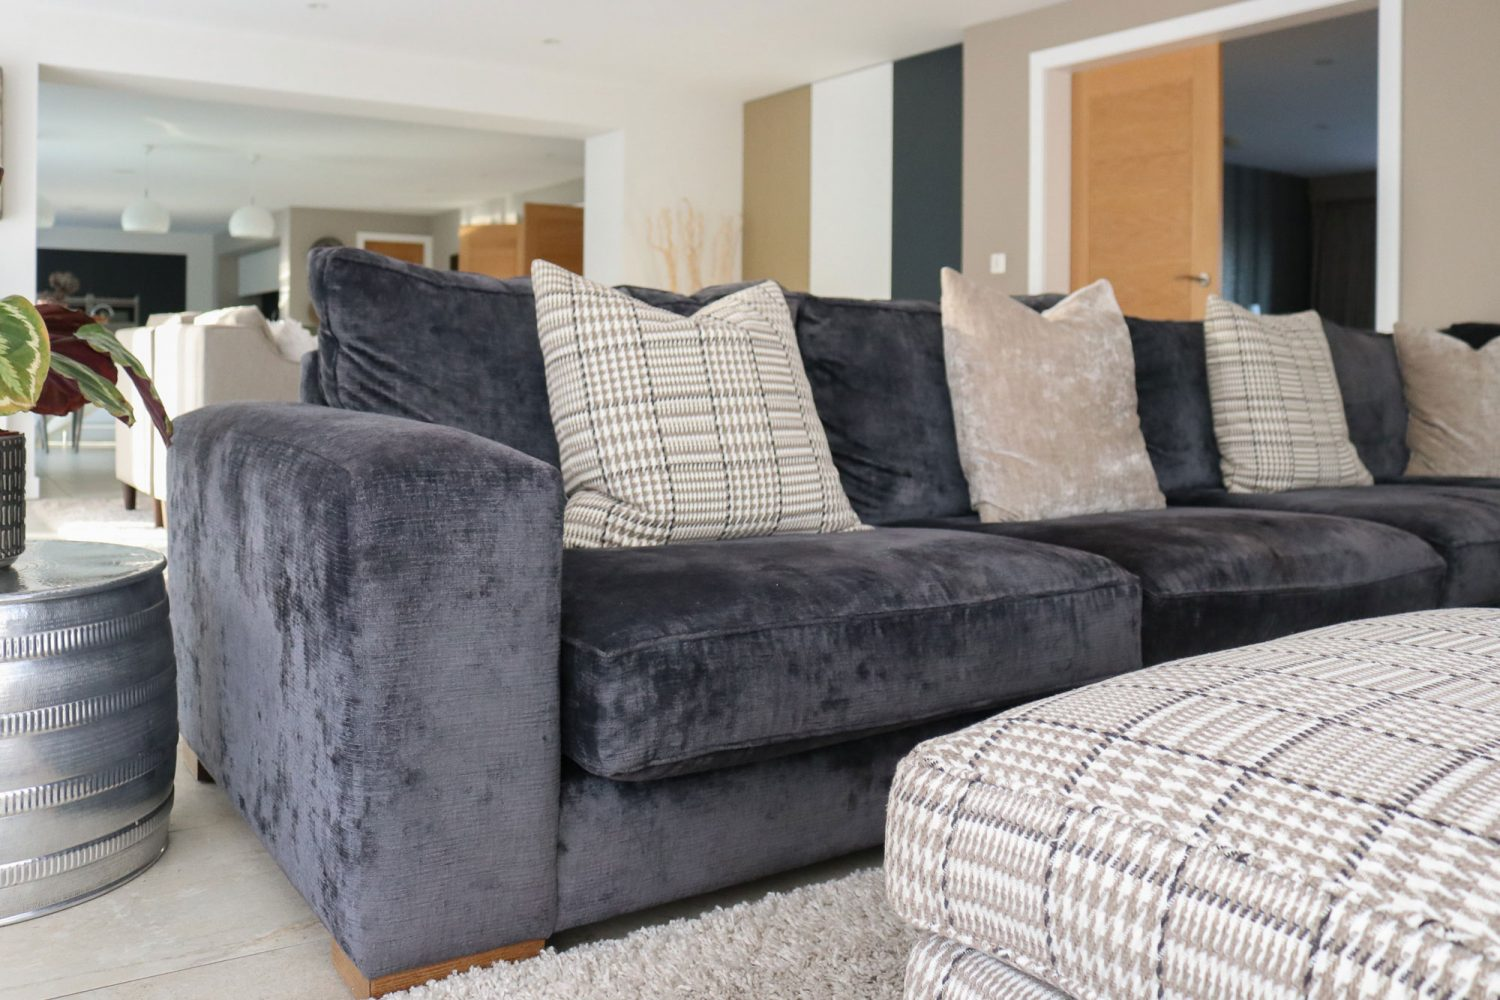 interior designer Liverpool, open plan living area